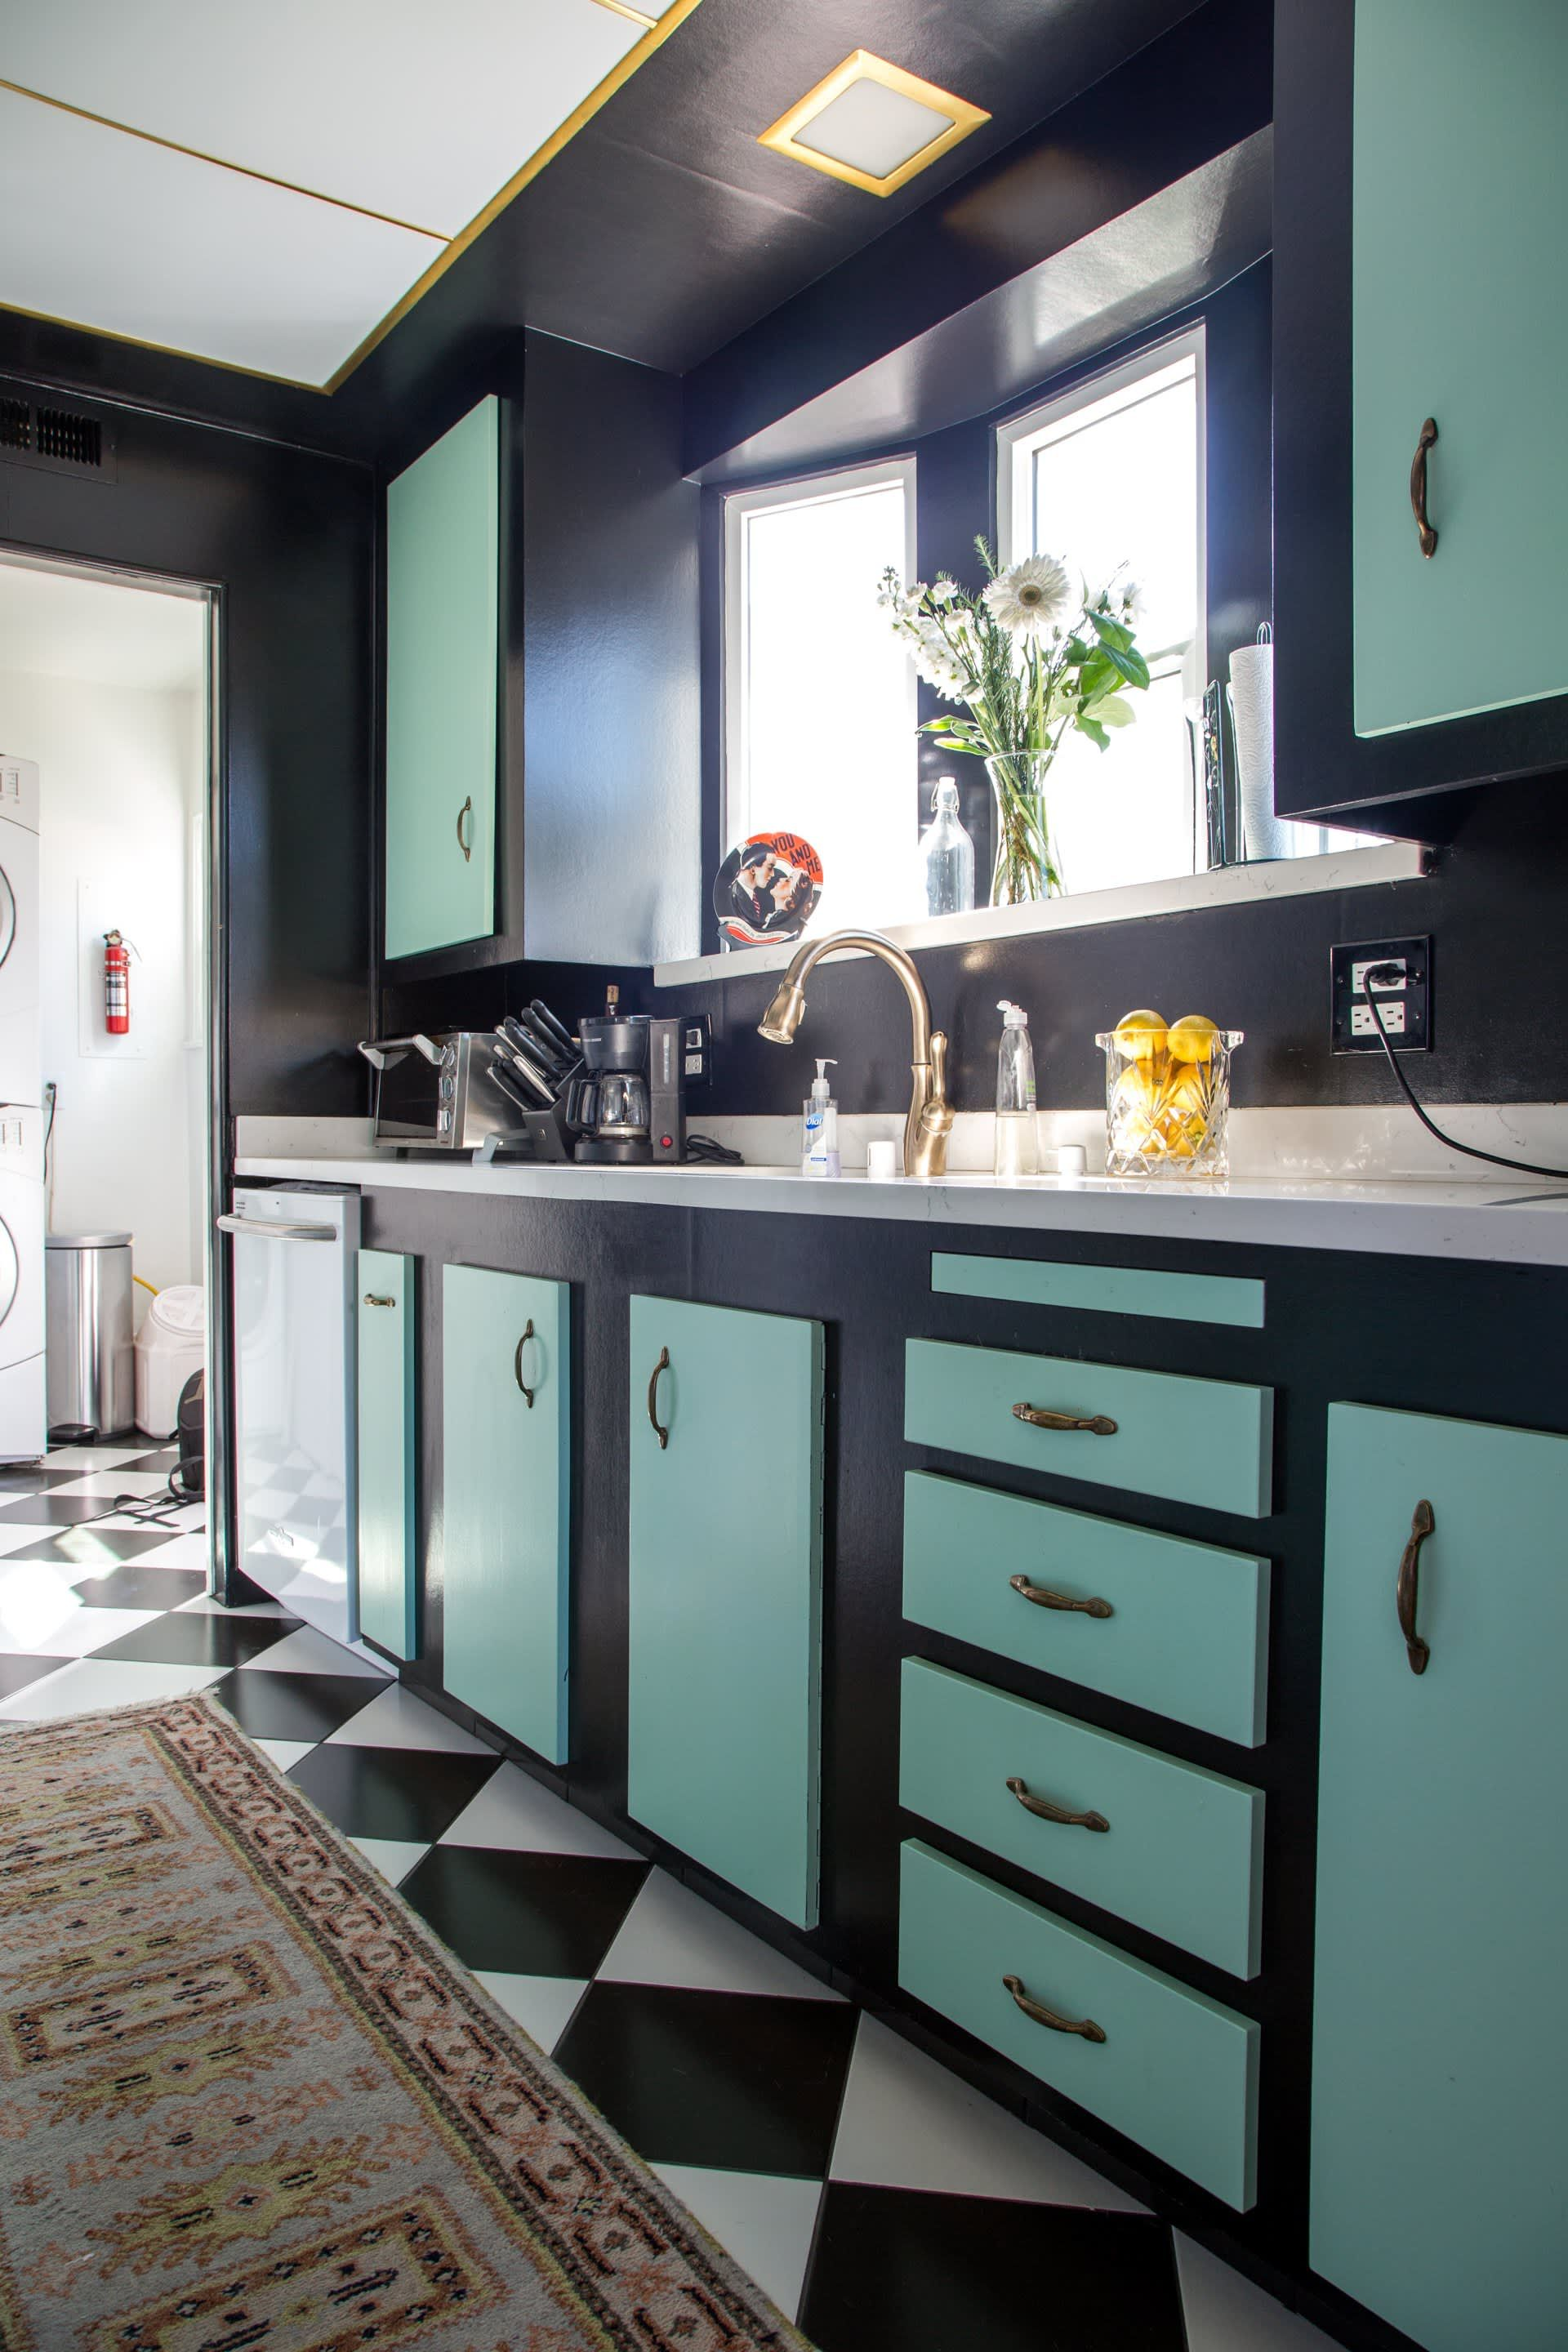 rebecca jared s eclectic hollywood regency in 2020 kitchen colour combination kitchen on kitchen cabinets color combination id=36469